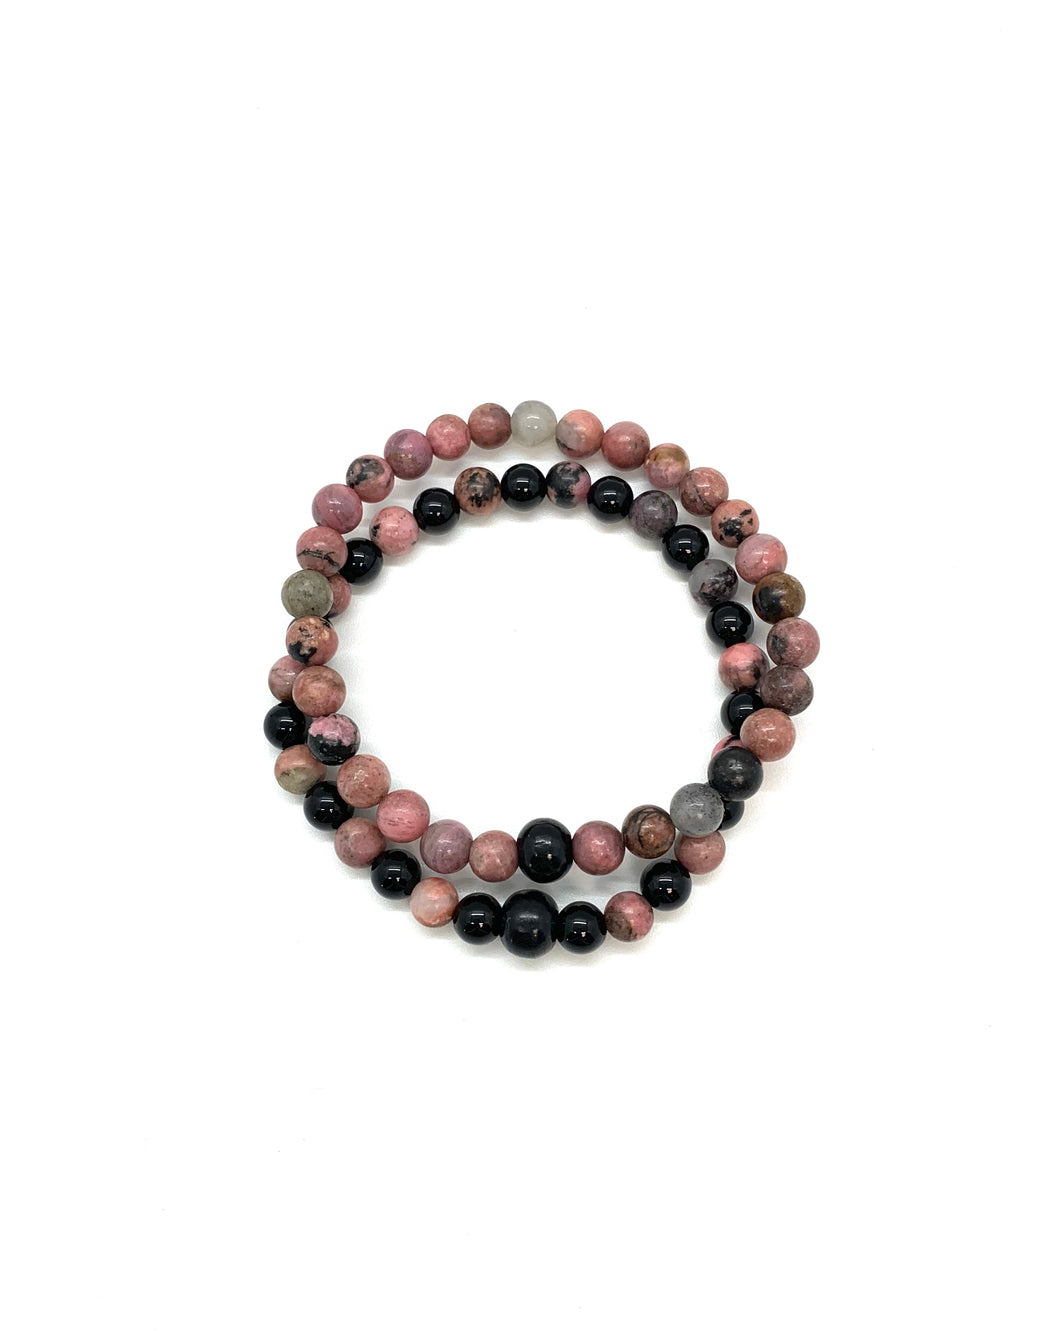 Rhodonite Bracelet Set for Boundaries, Compassion & Stability